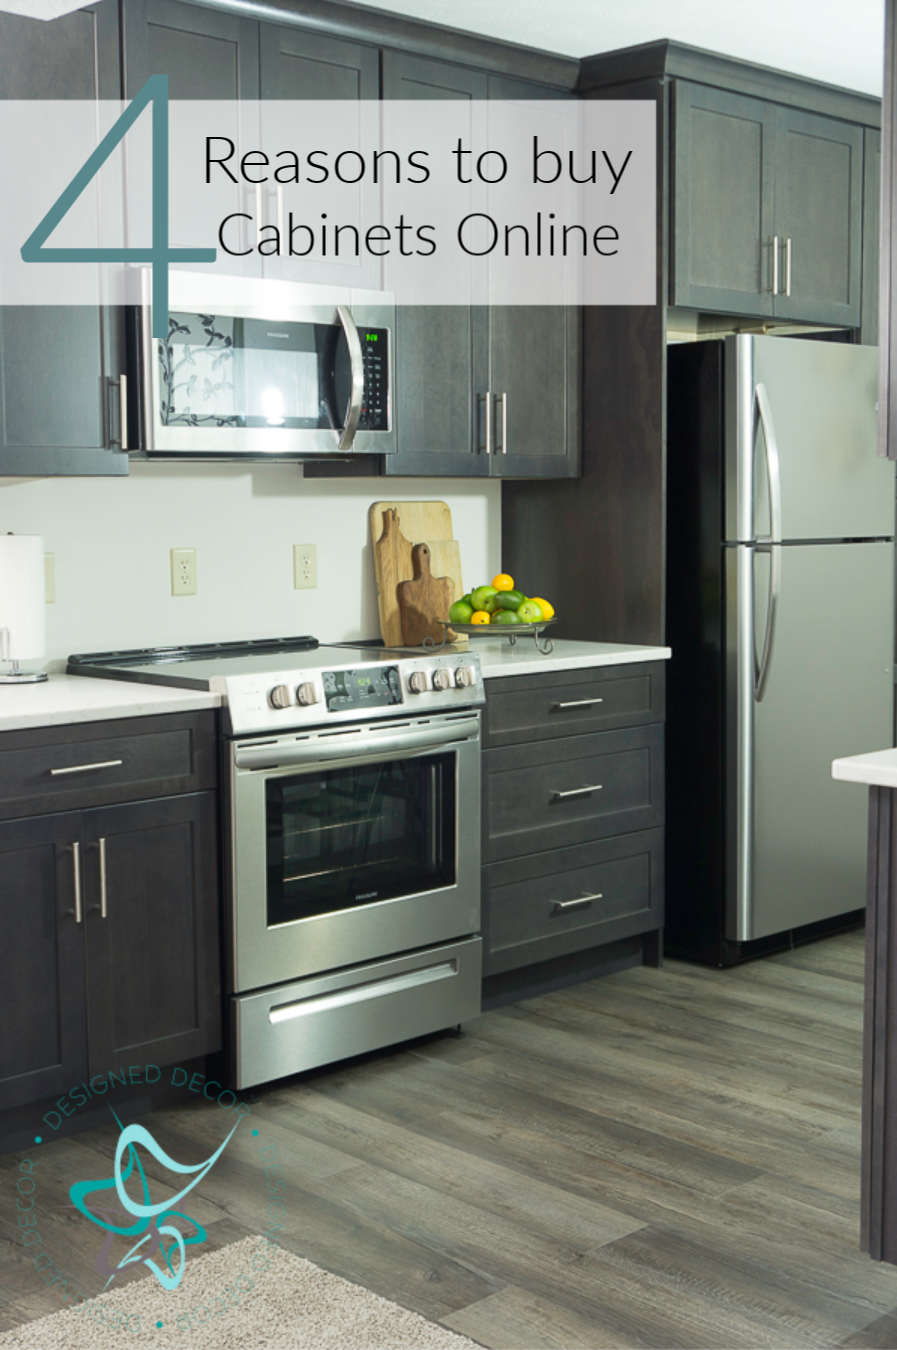 Buying Kitchen Cabinets Online For The Guest Suite Designed Decor Buy Kitchen Cabinets Online Kitchen Cabinets Cheap Kitchen Cabinets